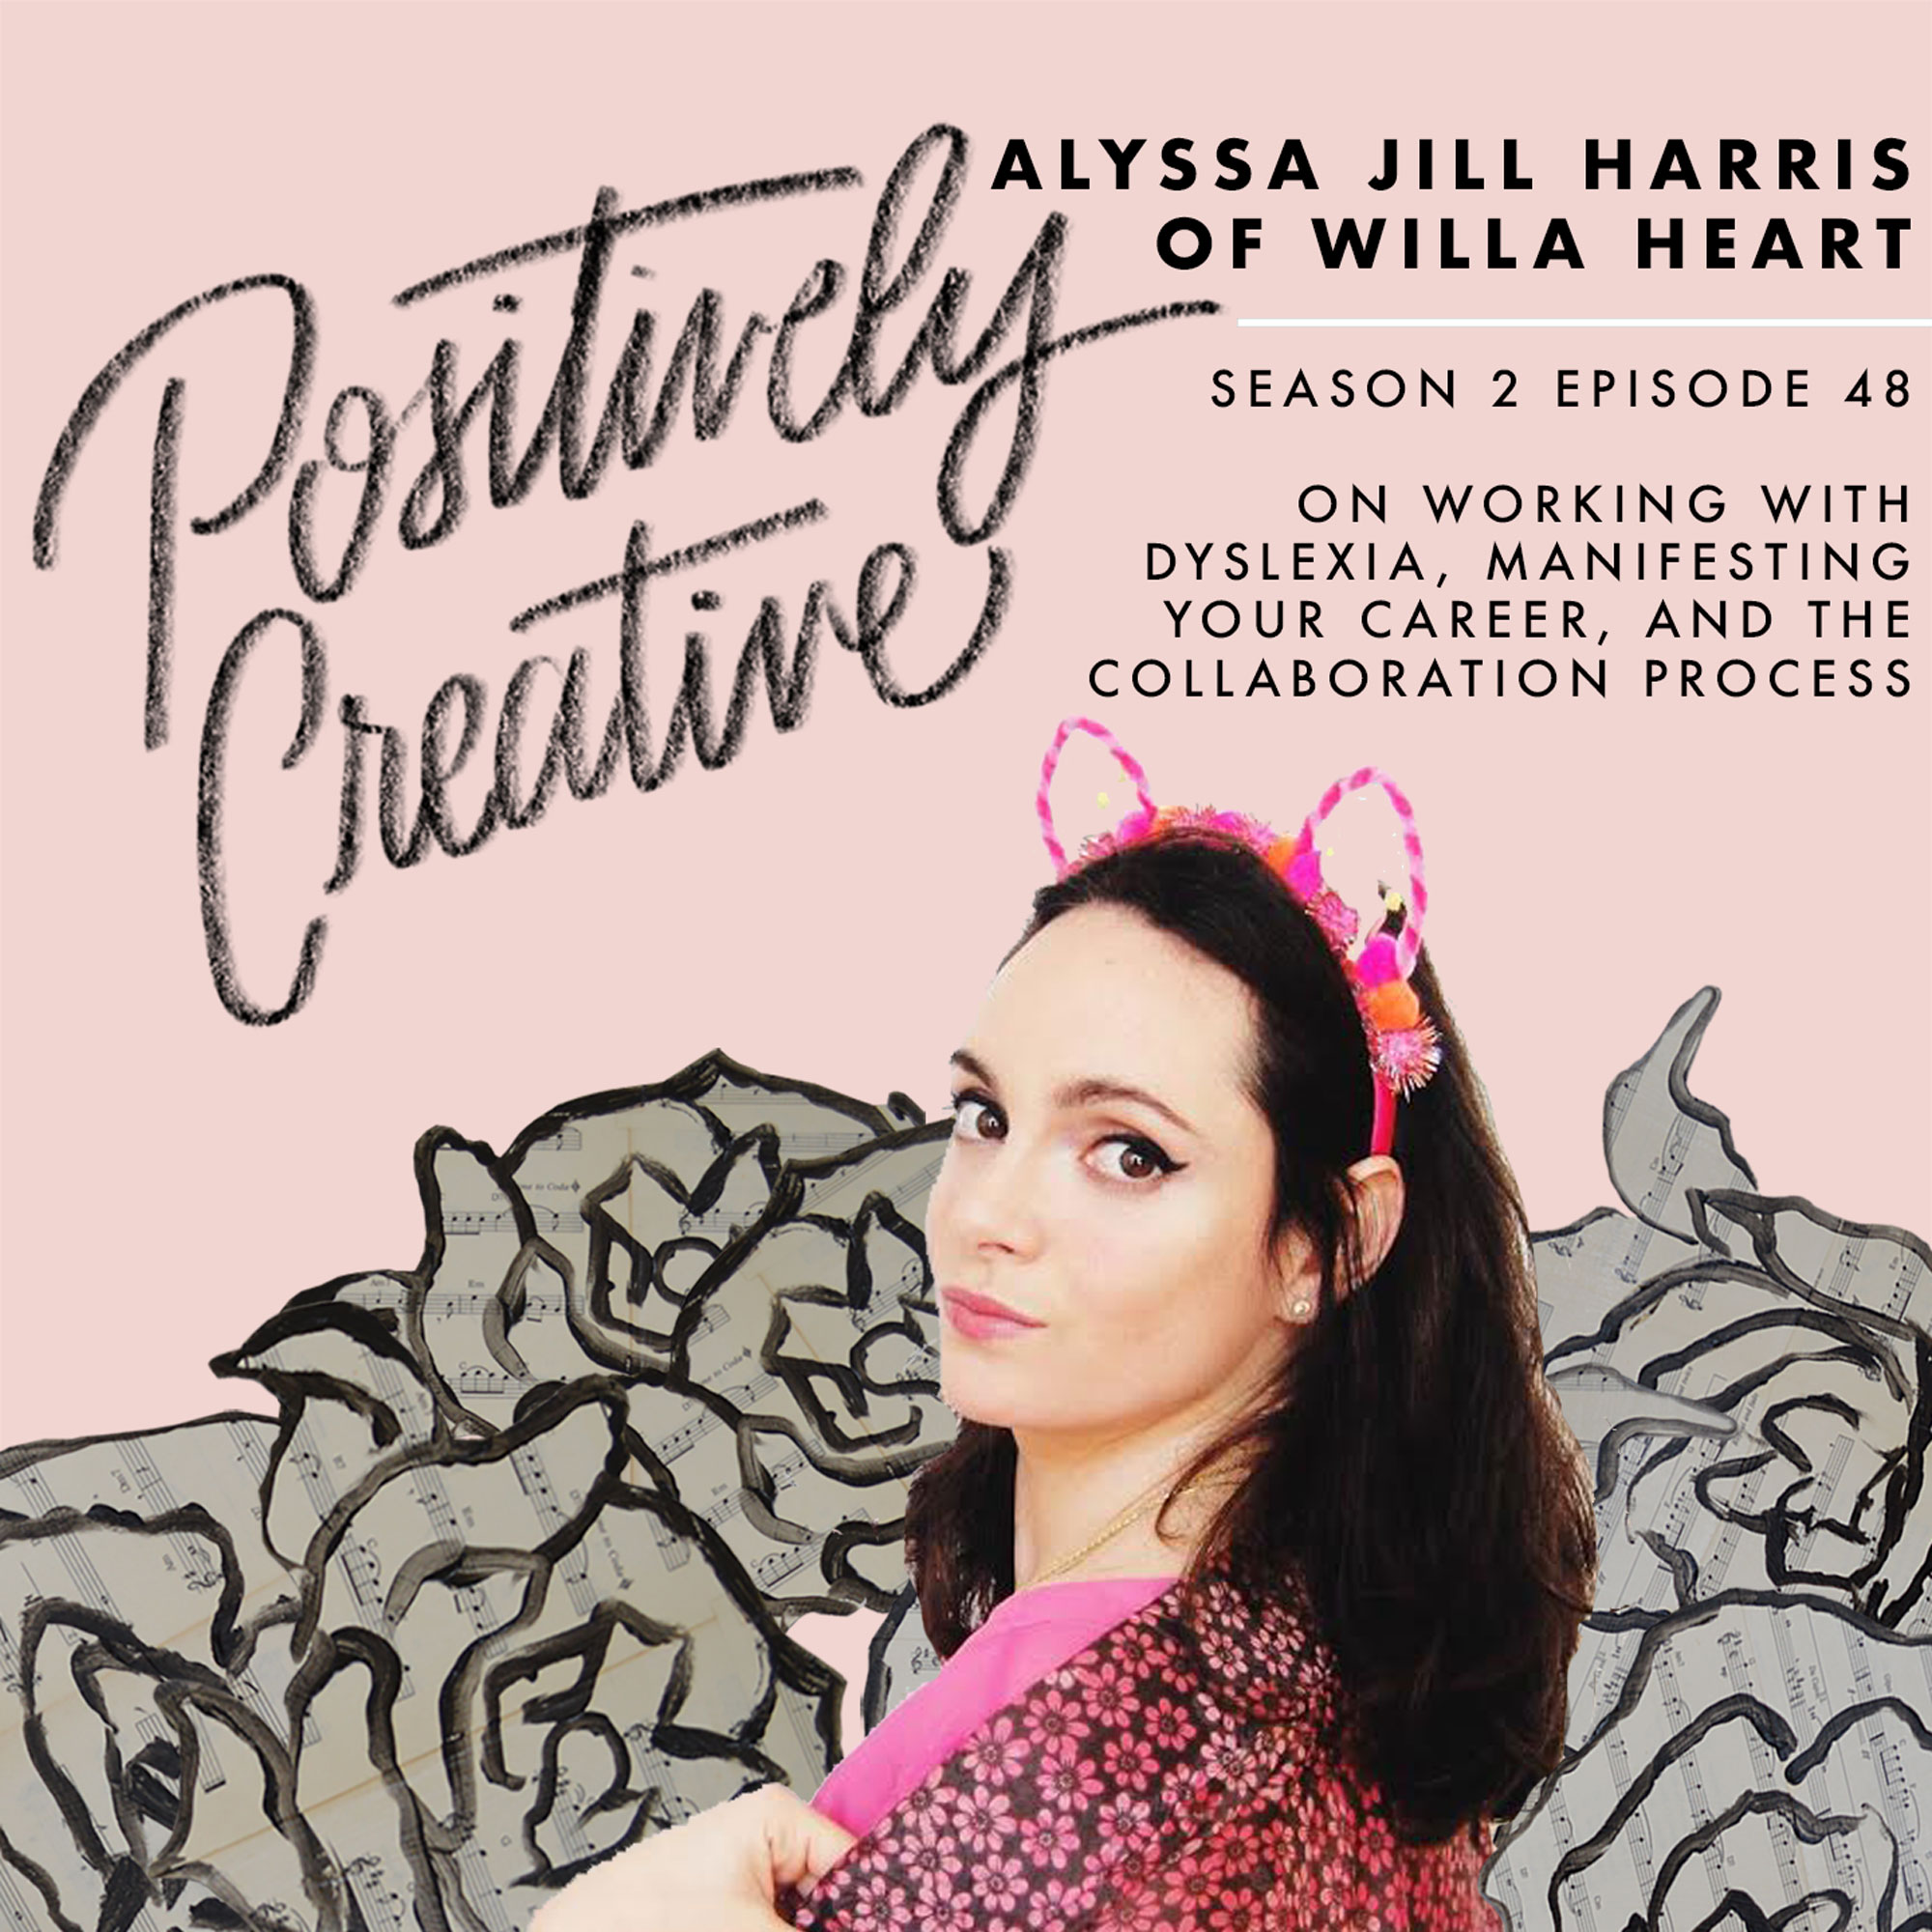 S2-Ep-48--Alyssa-Jill-Harris-of-Willa-Heart,-Fine-Artist,-on-Working-with-Dyslexia,-Manifesting-your-Career,-and-the-Collaboration-Process.jpg